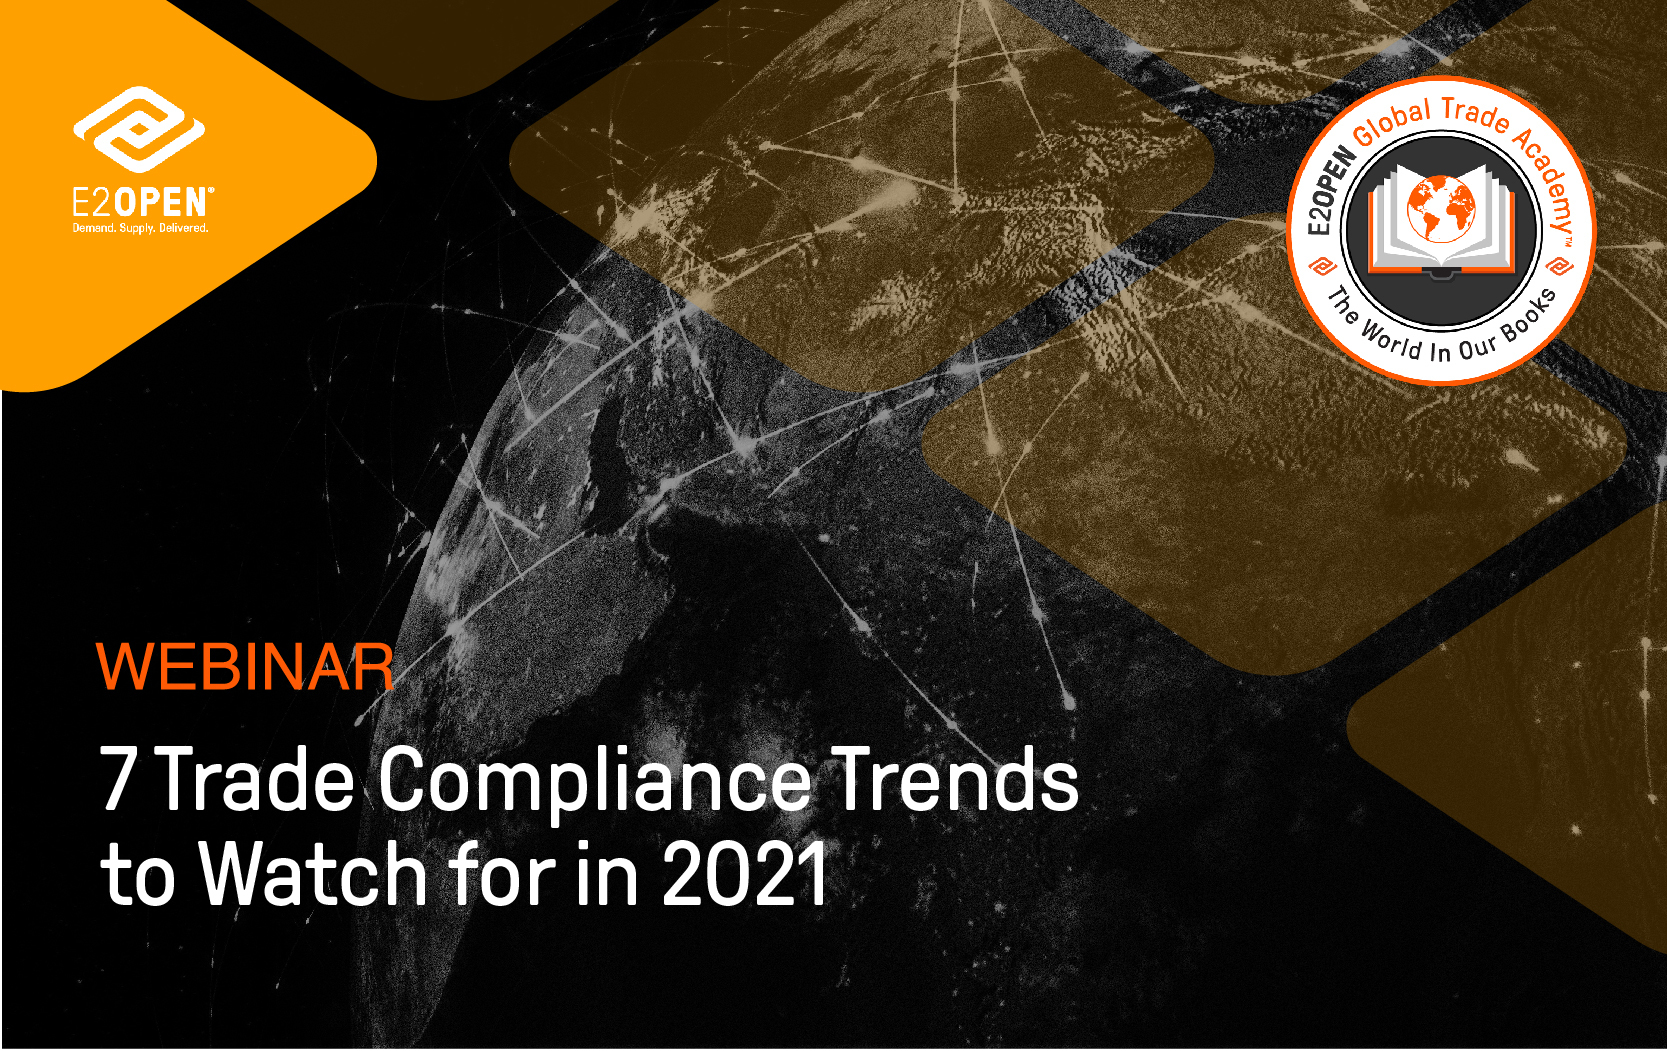 E2open GTA Webinar_7 Trade Compliance Trends to Watch for in 2021